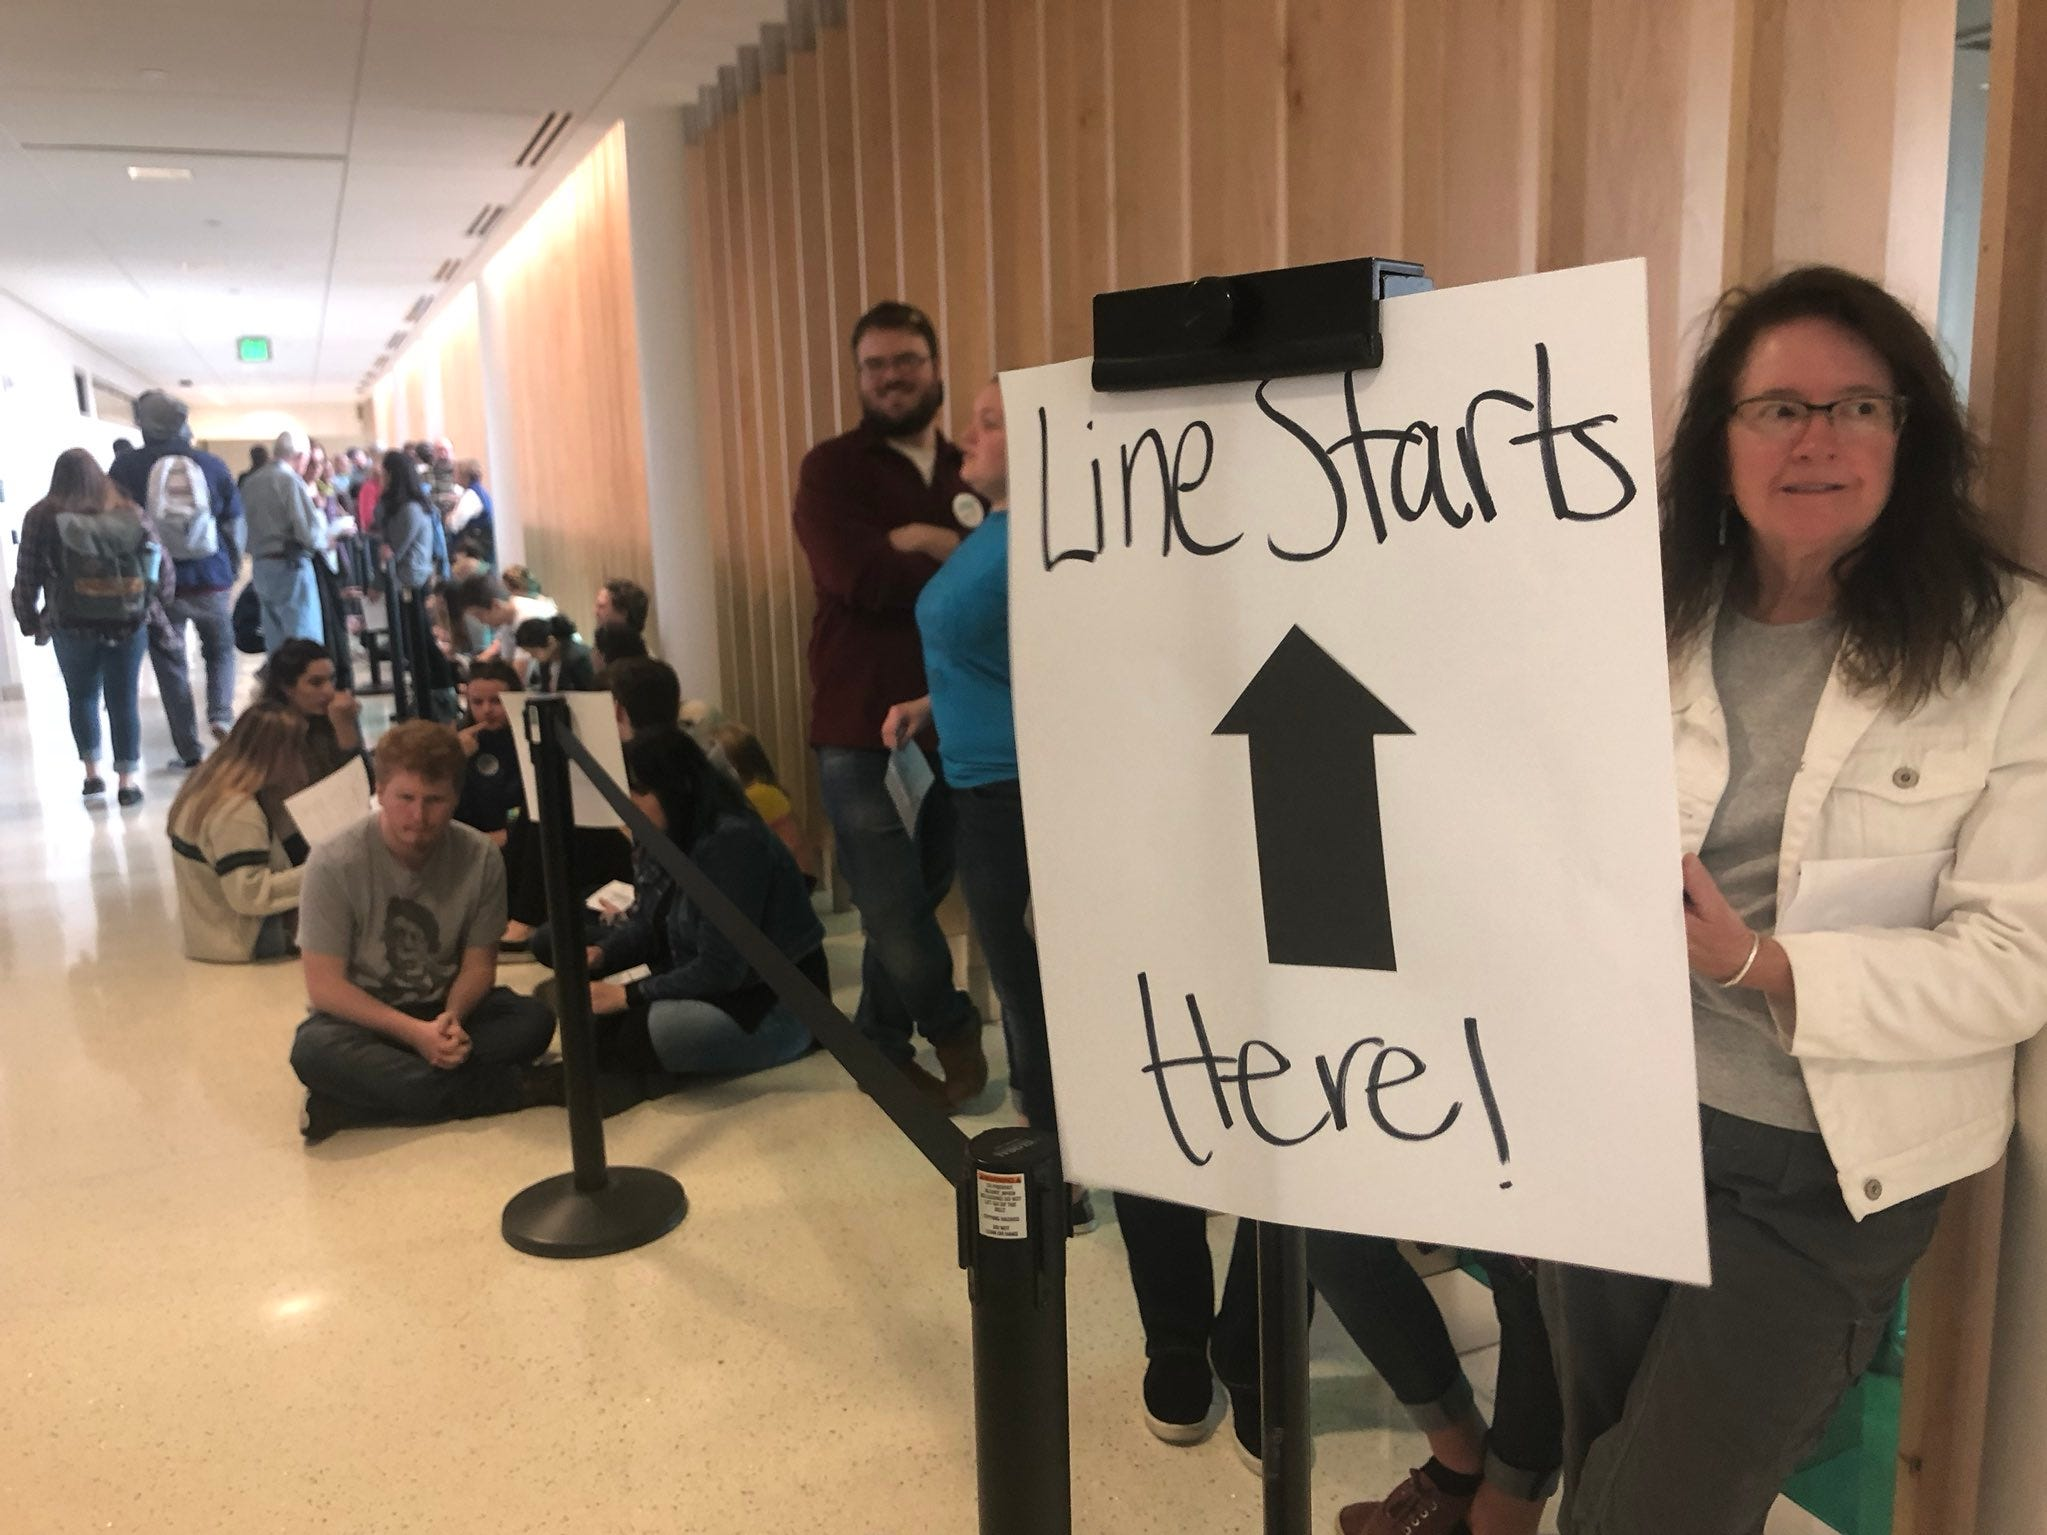 A line of people wait to get into the rally featuring Sen. Bernie Sanders, governor candidate Rep. Jared Polis, congressional candidate Joe Neguse and Sen. Michael Bennet.